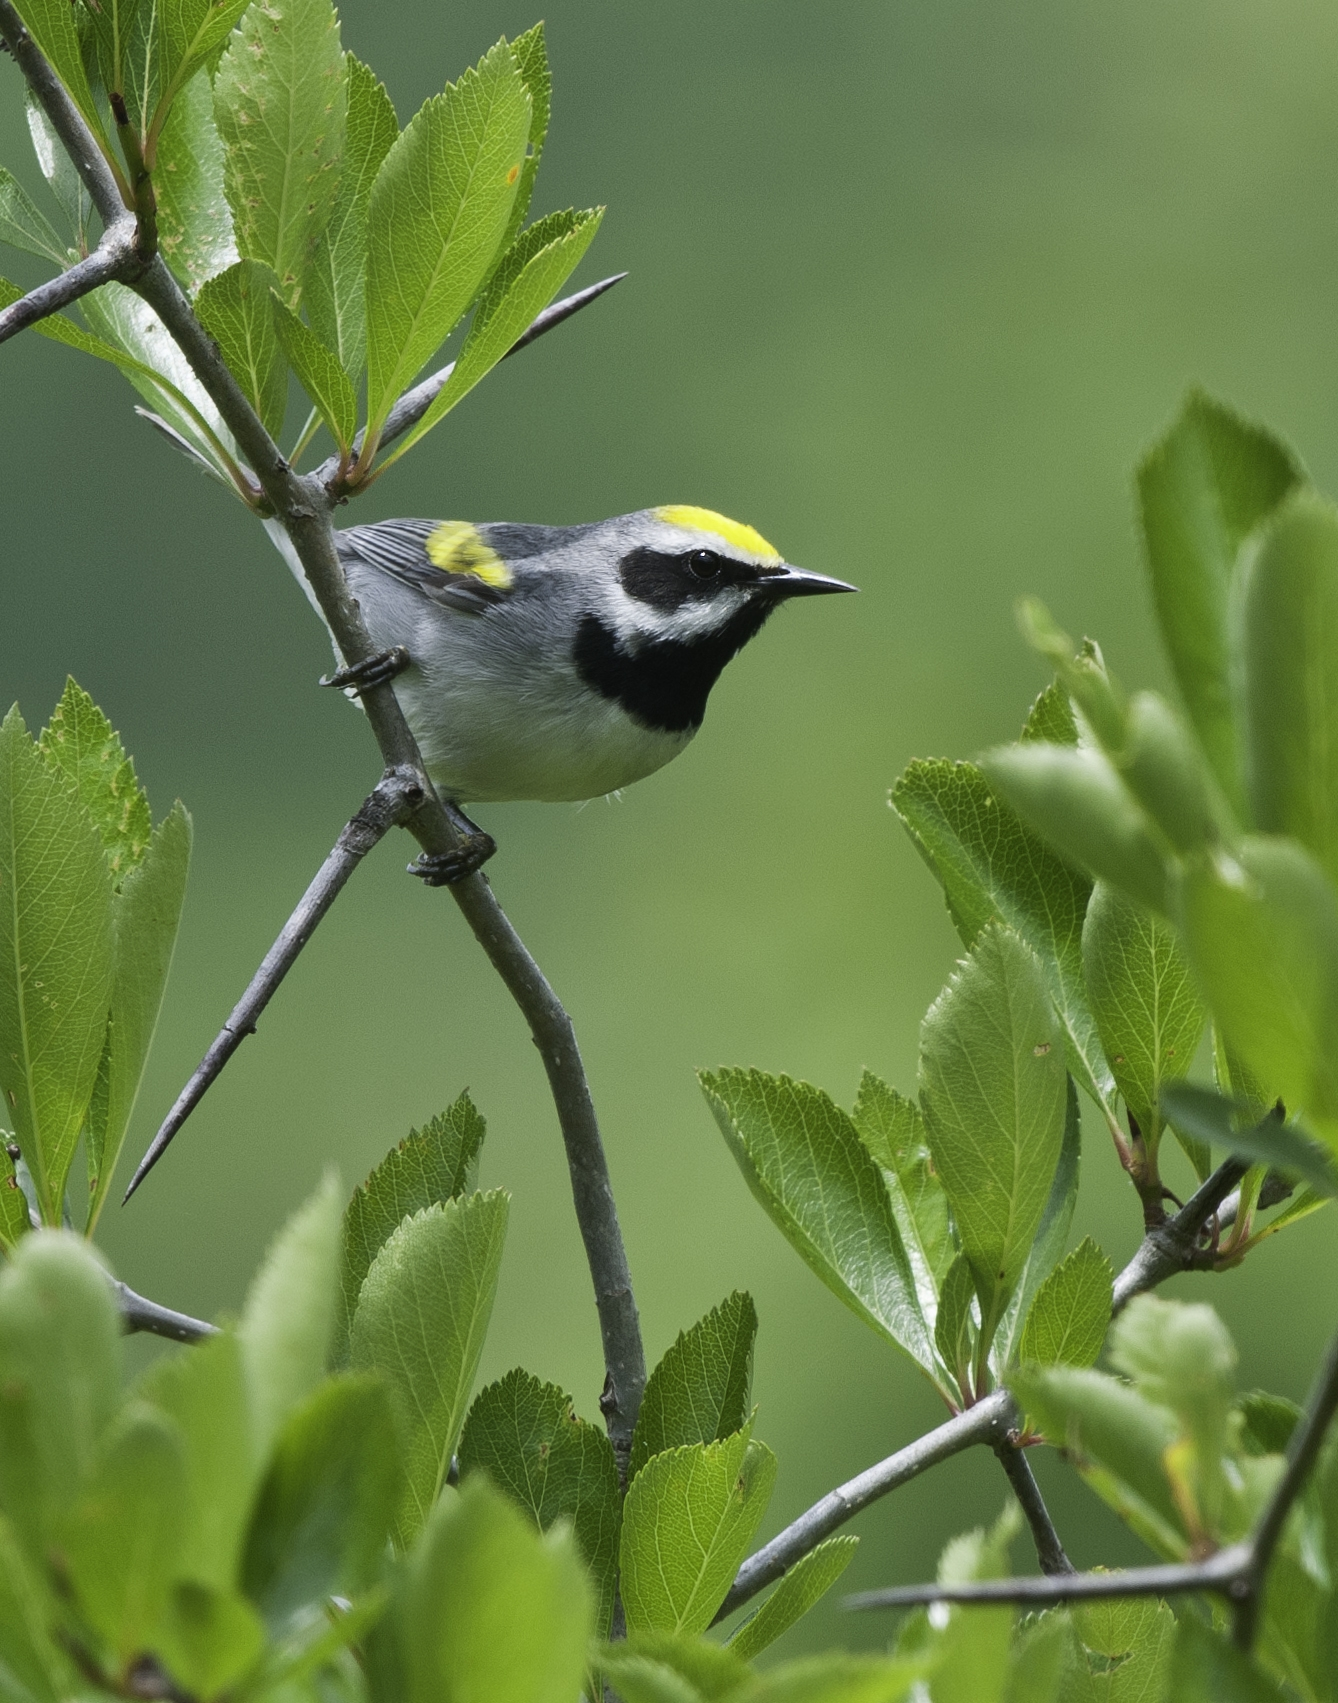 A Golden-winged Warbler on its breeding territory in Smyth County along the Appalachian Trail.